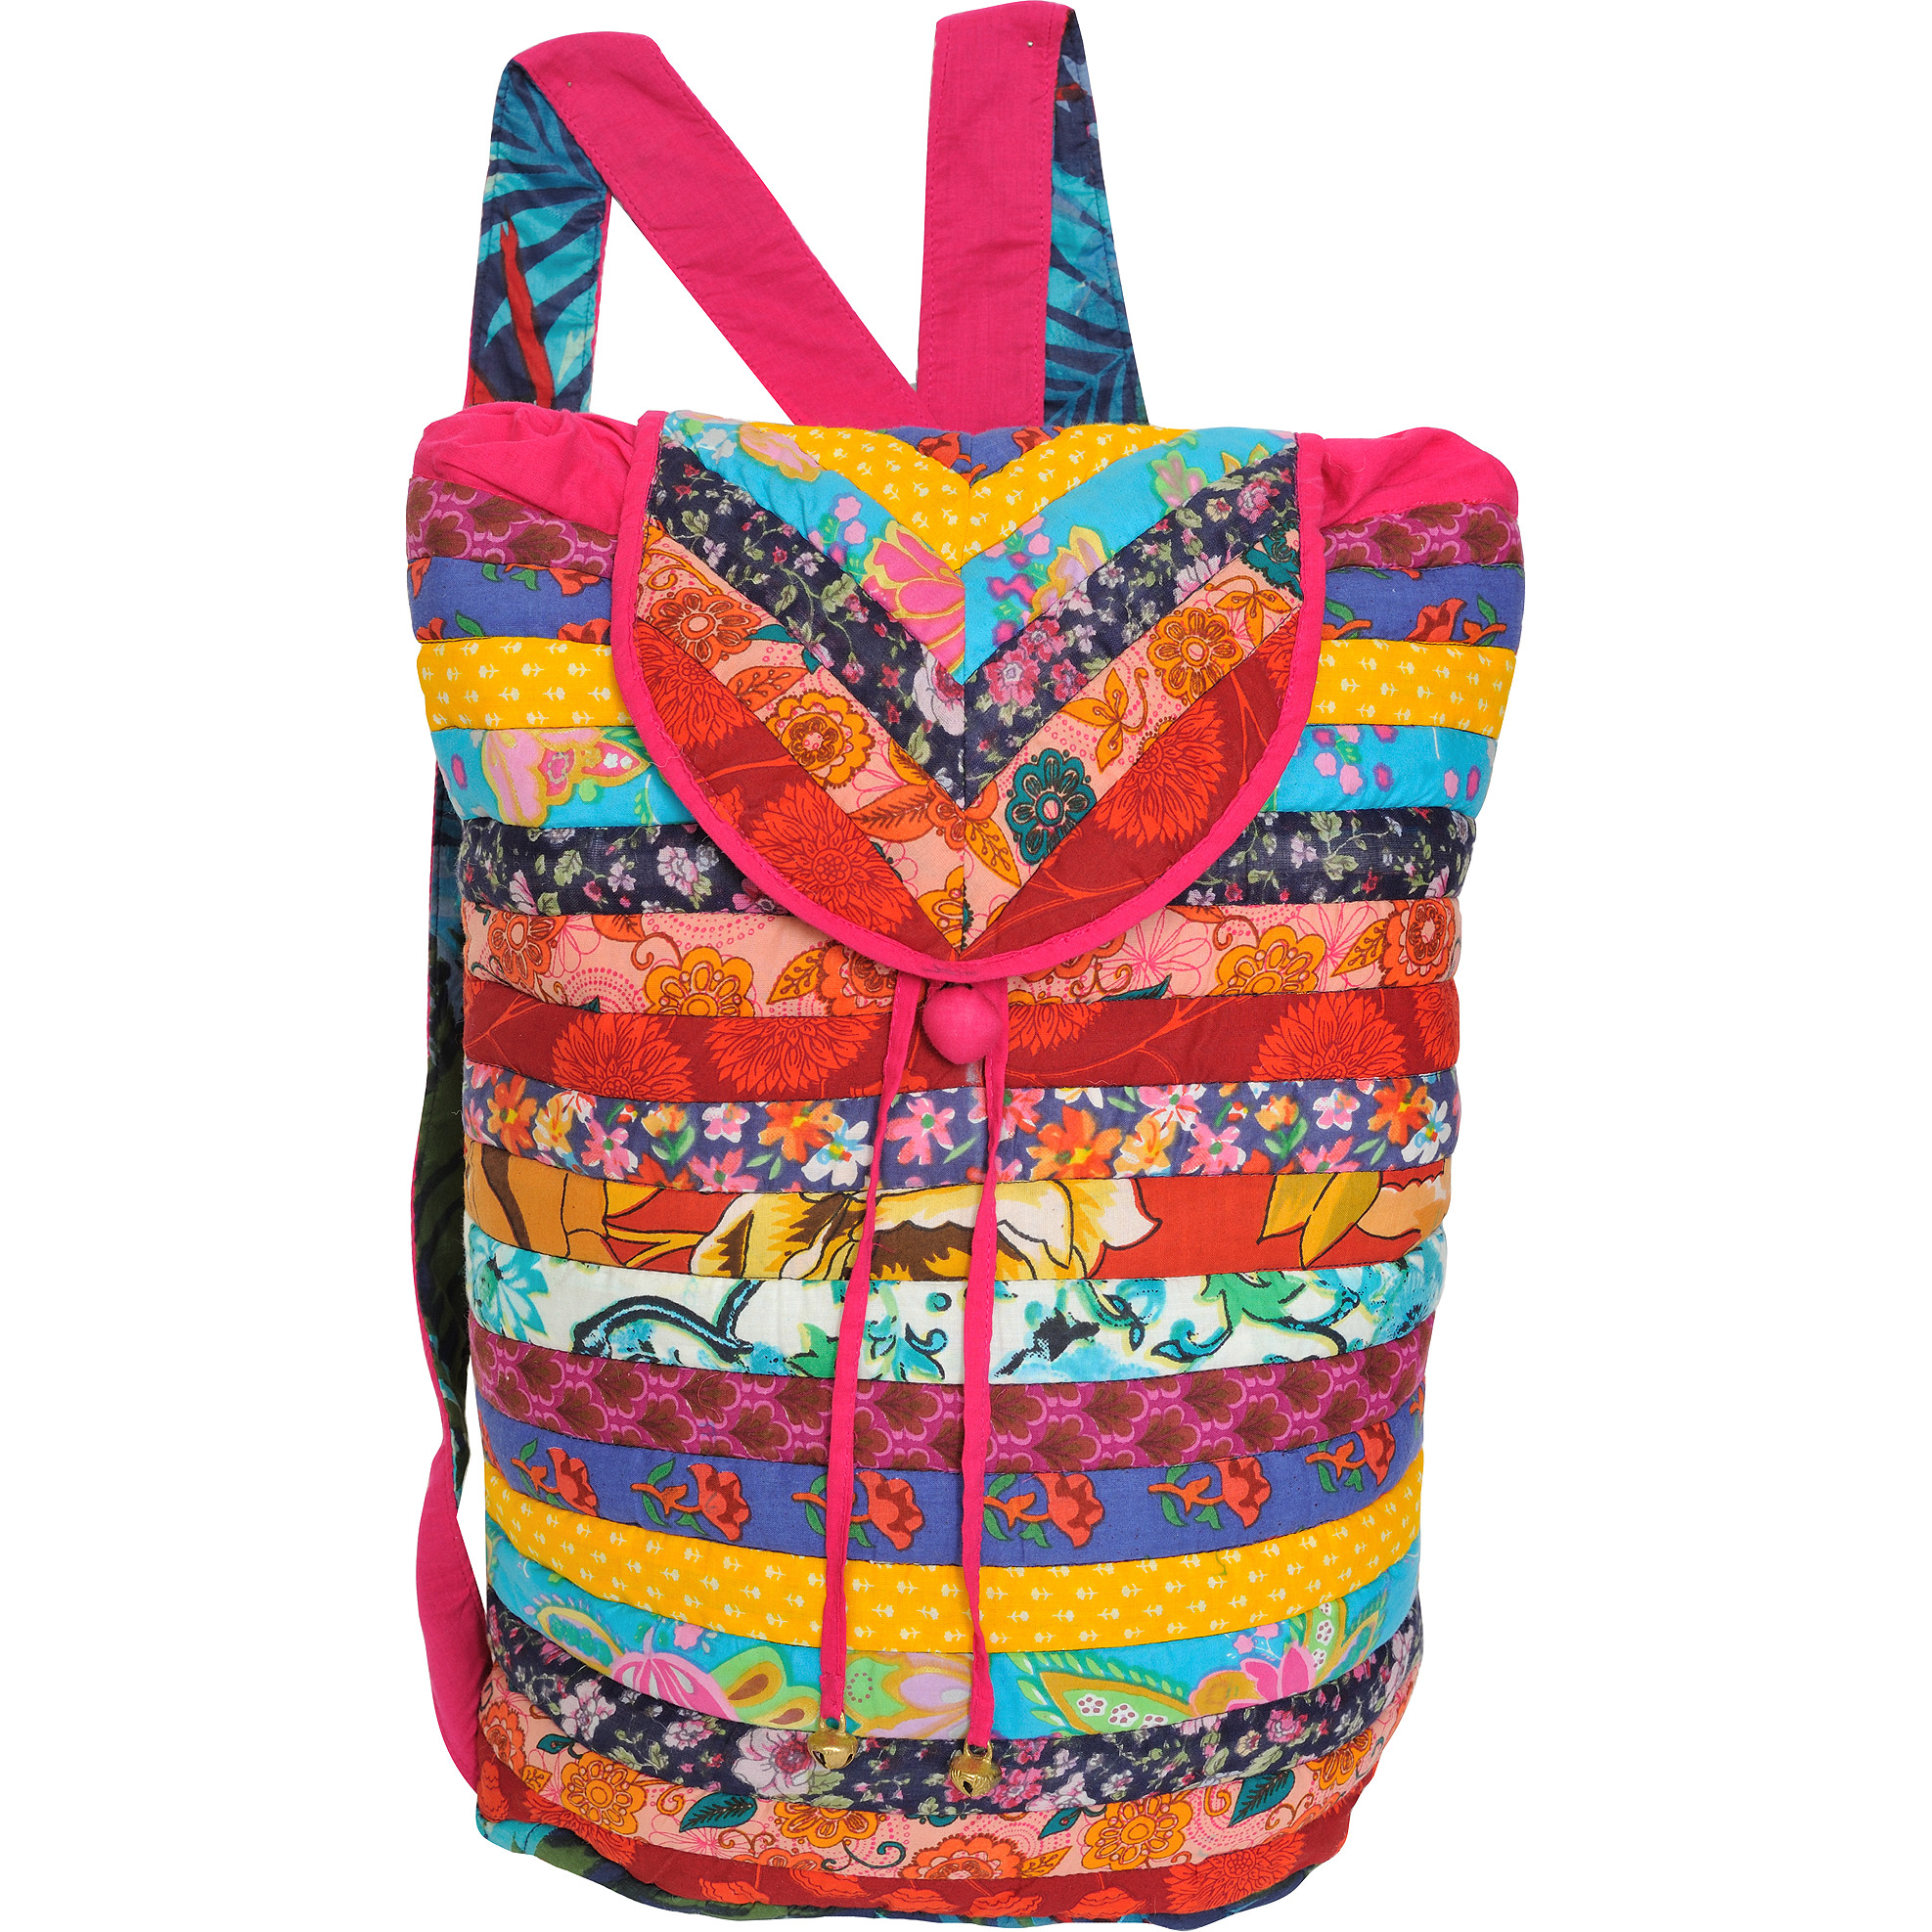 Multicolor Floral Printed Backpack with Patchwork